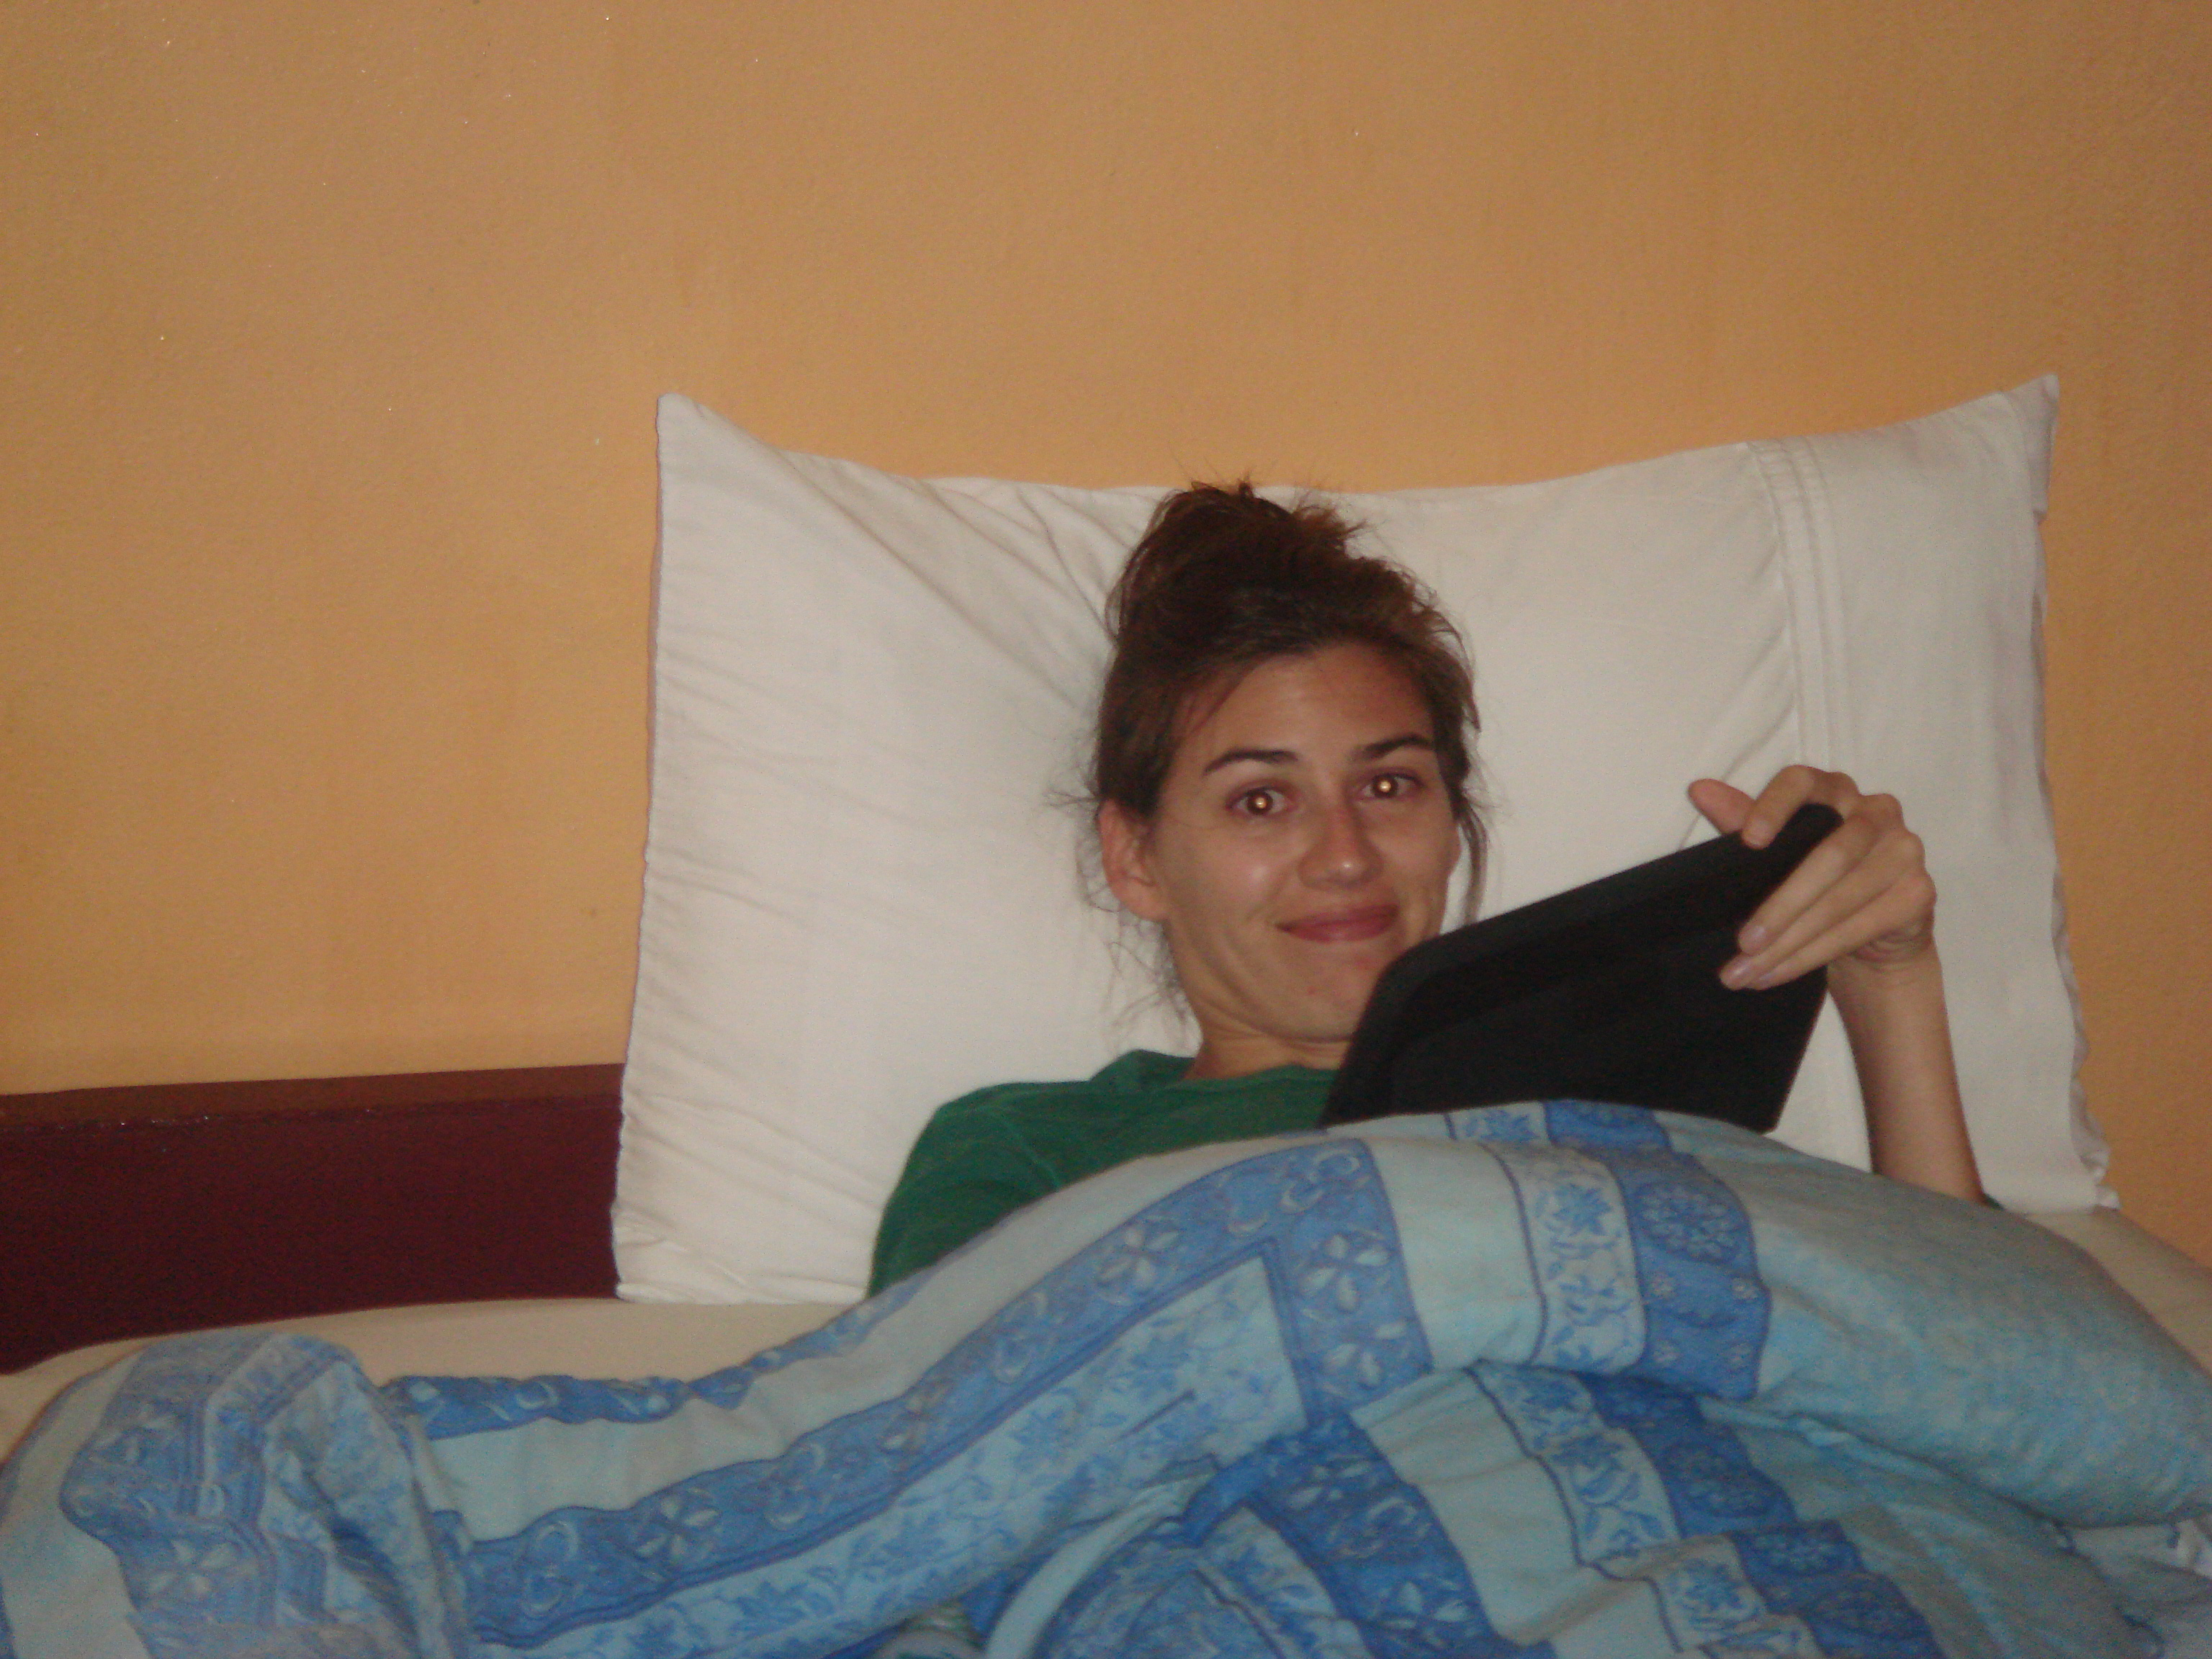 Using my Tablet travel electronic in bed in Chiang Mai.